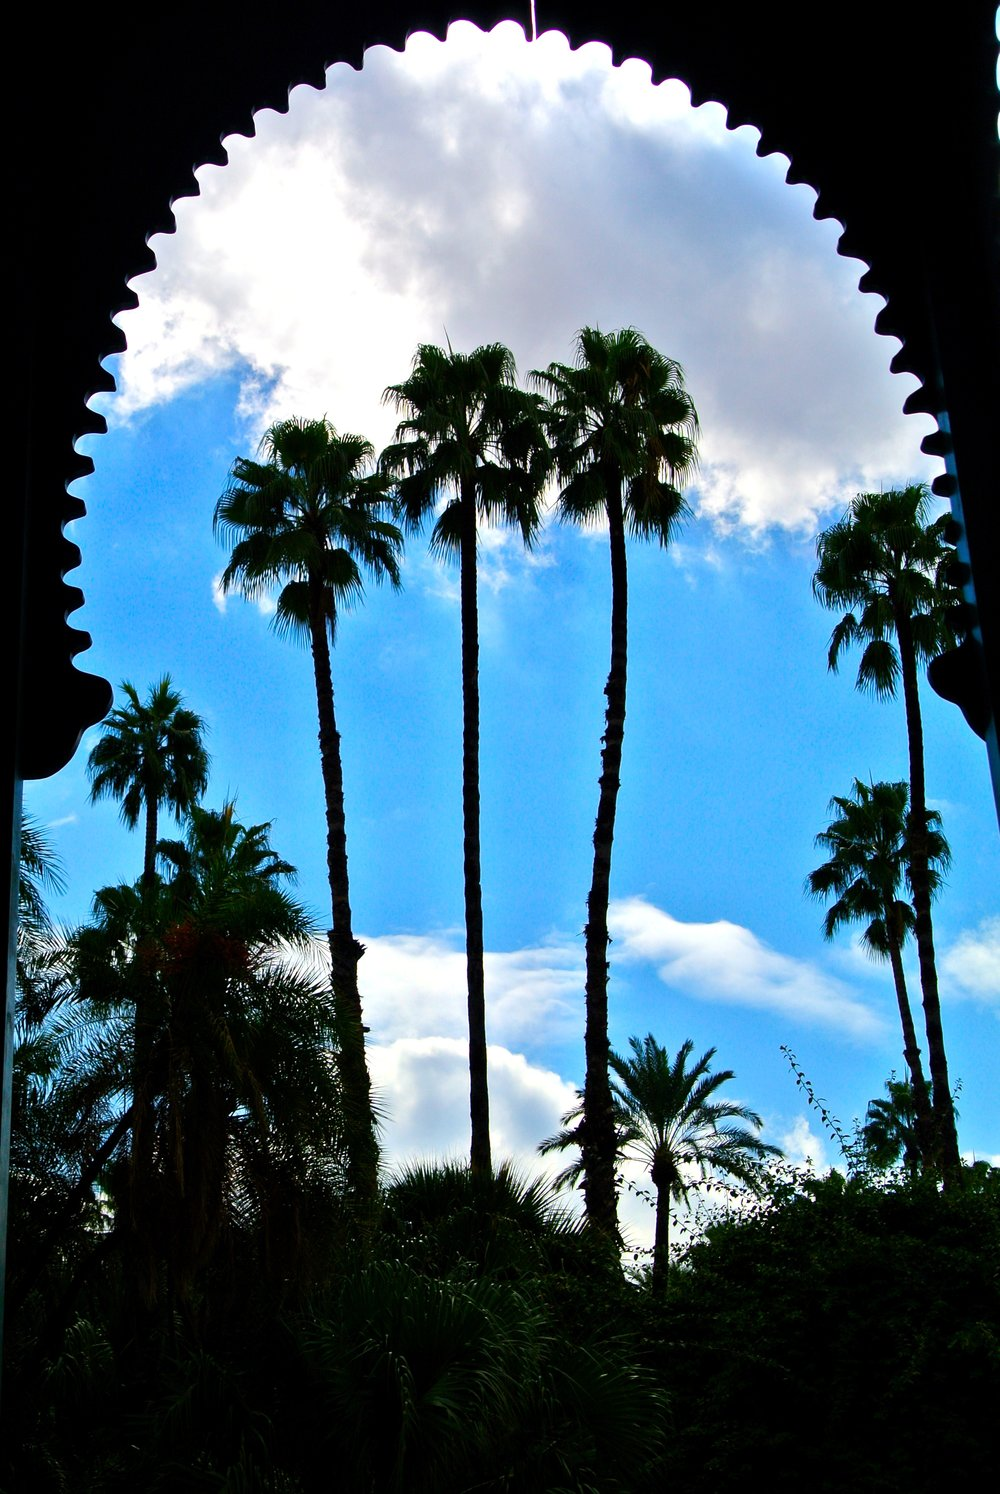 Towering palms seen through an archway